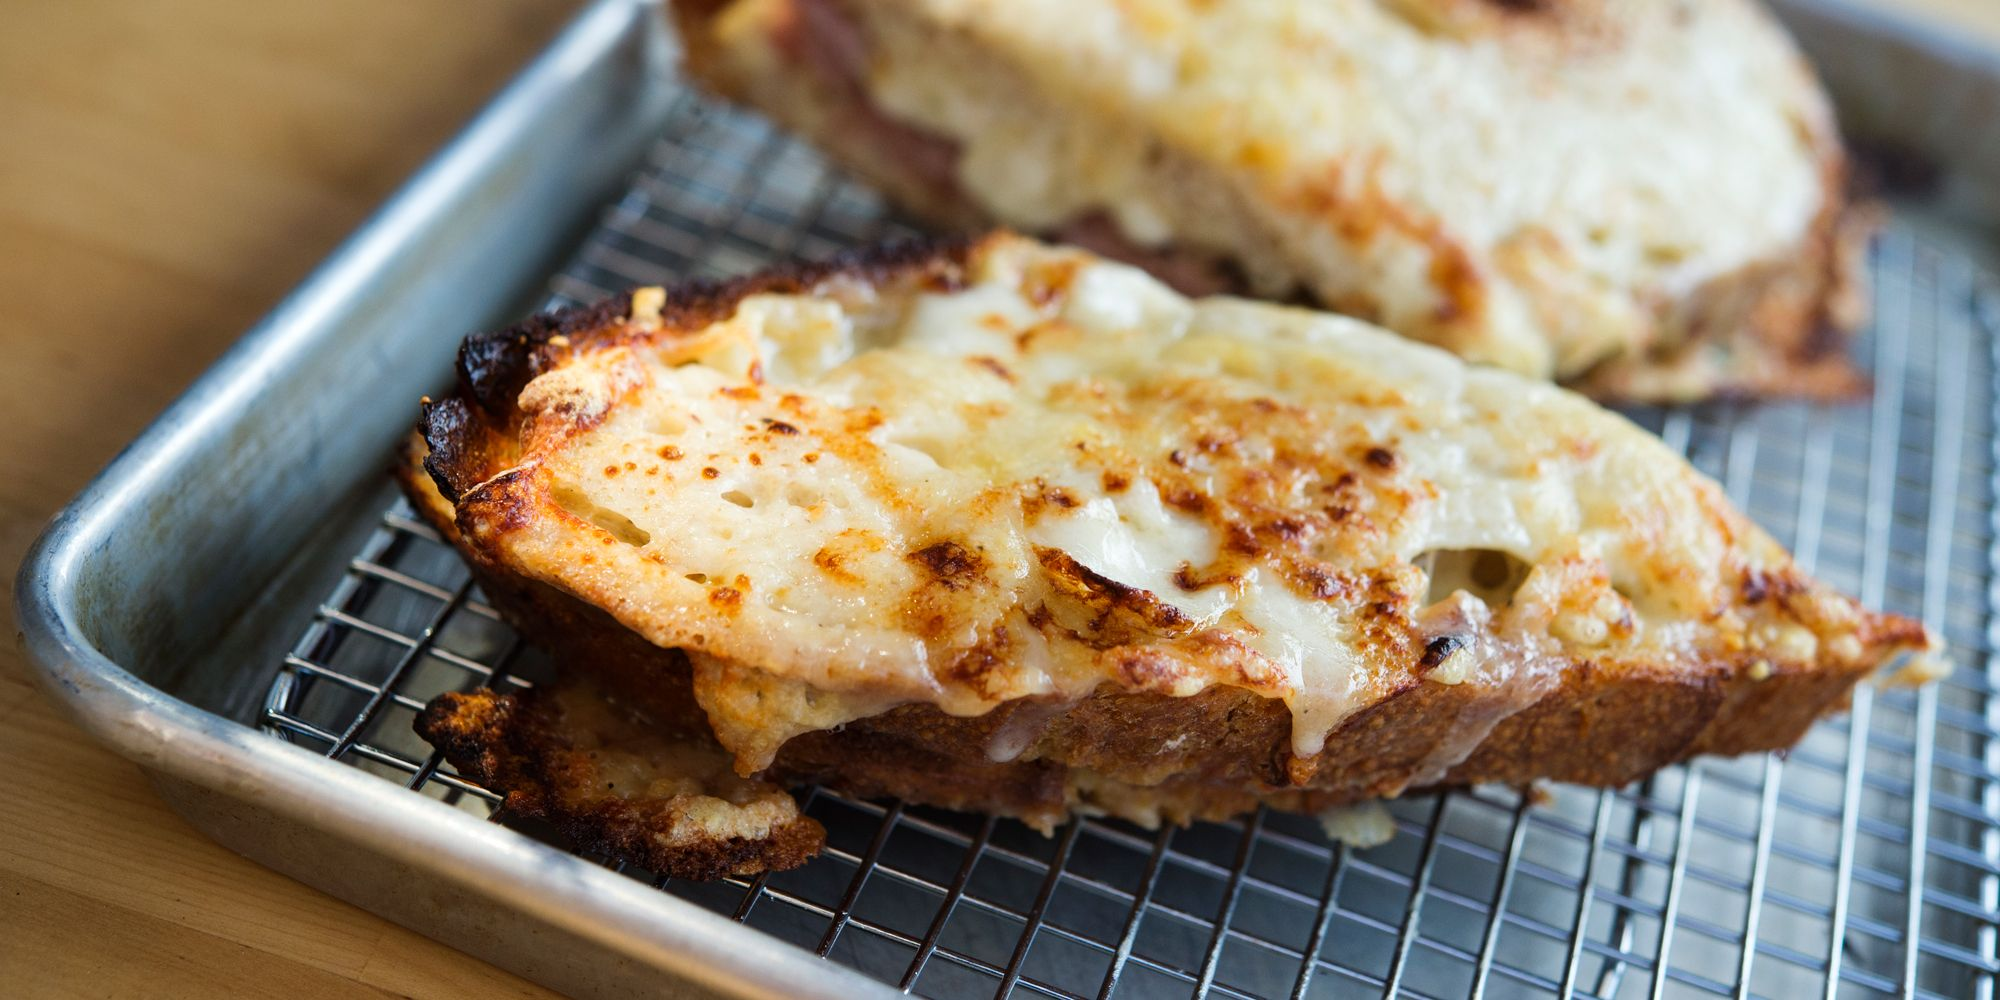 Believe It or Not, We Found a Replacement for Grilled Cheese